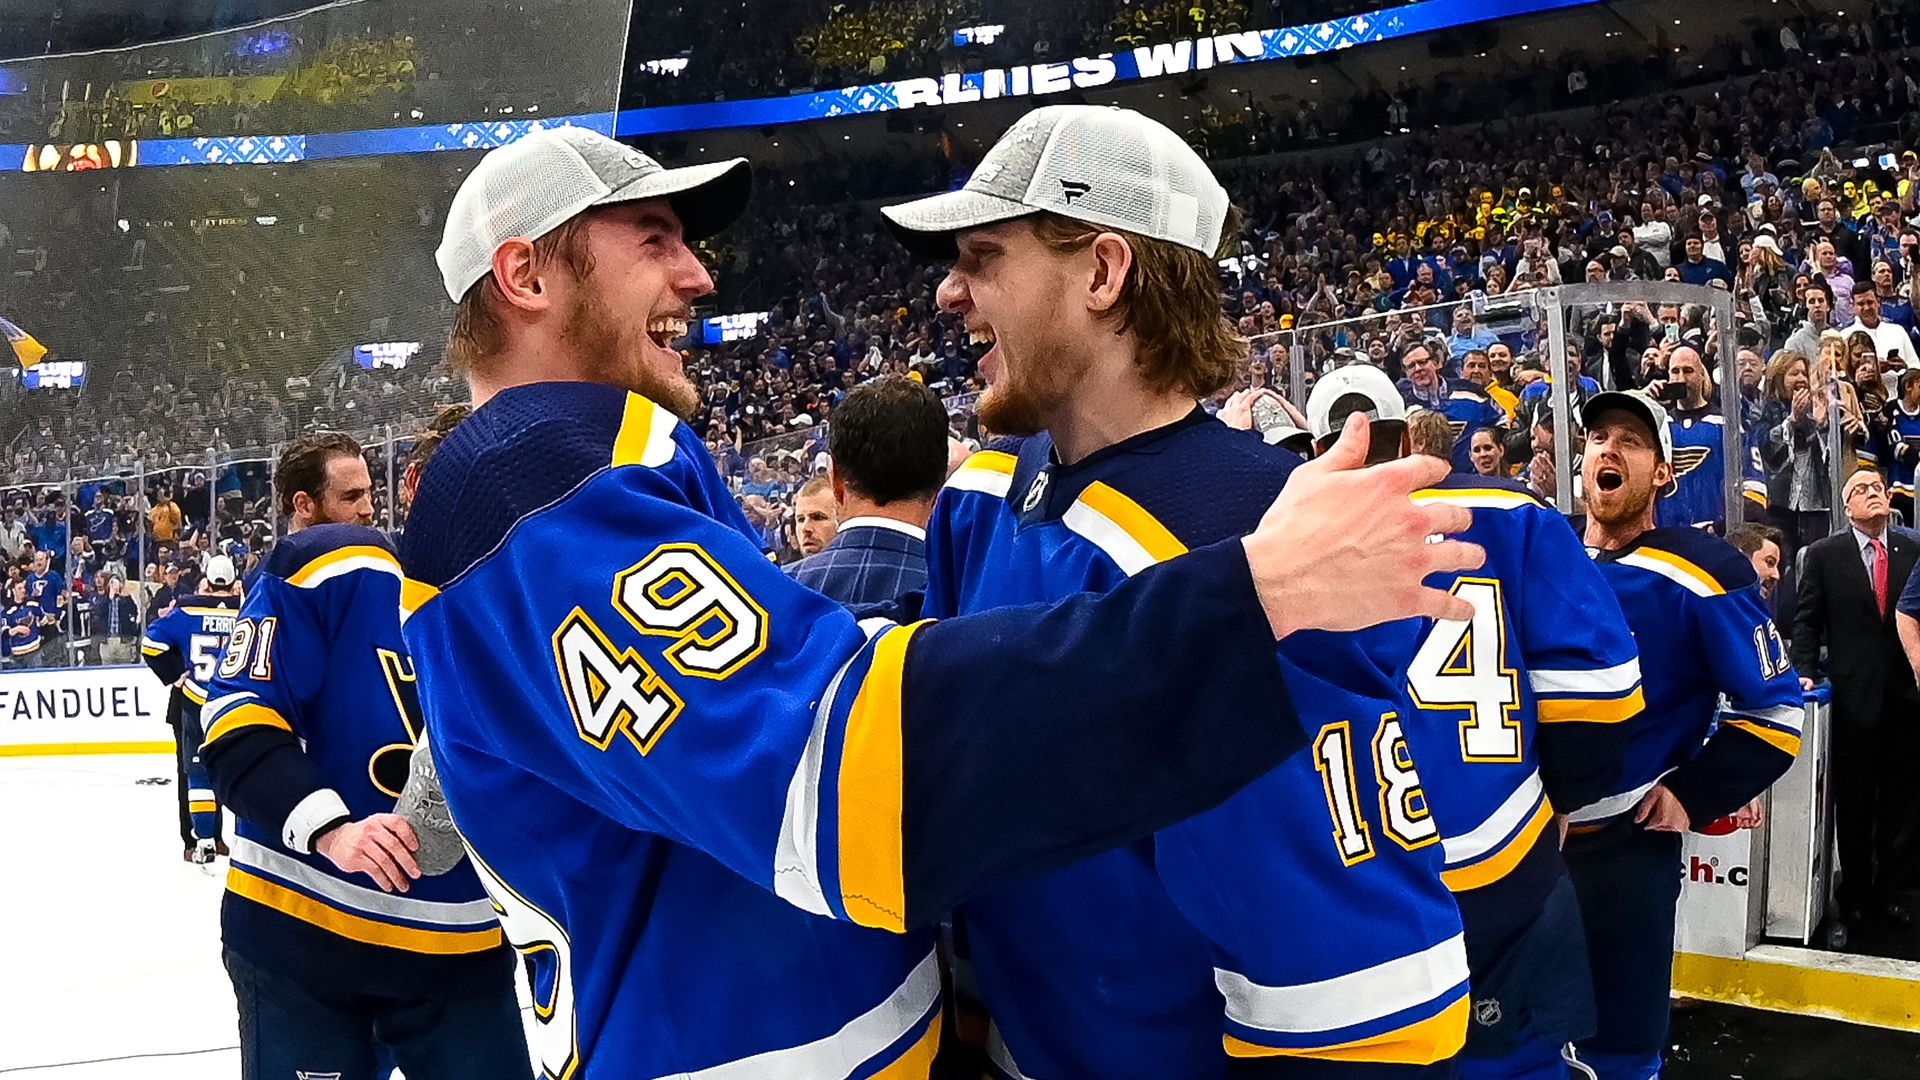 Blues players hugging each other